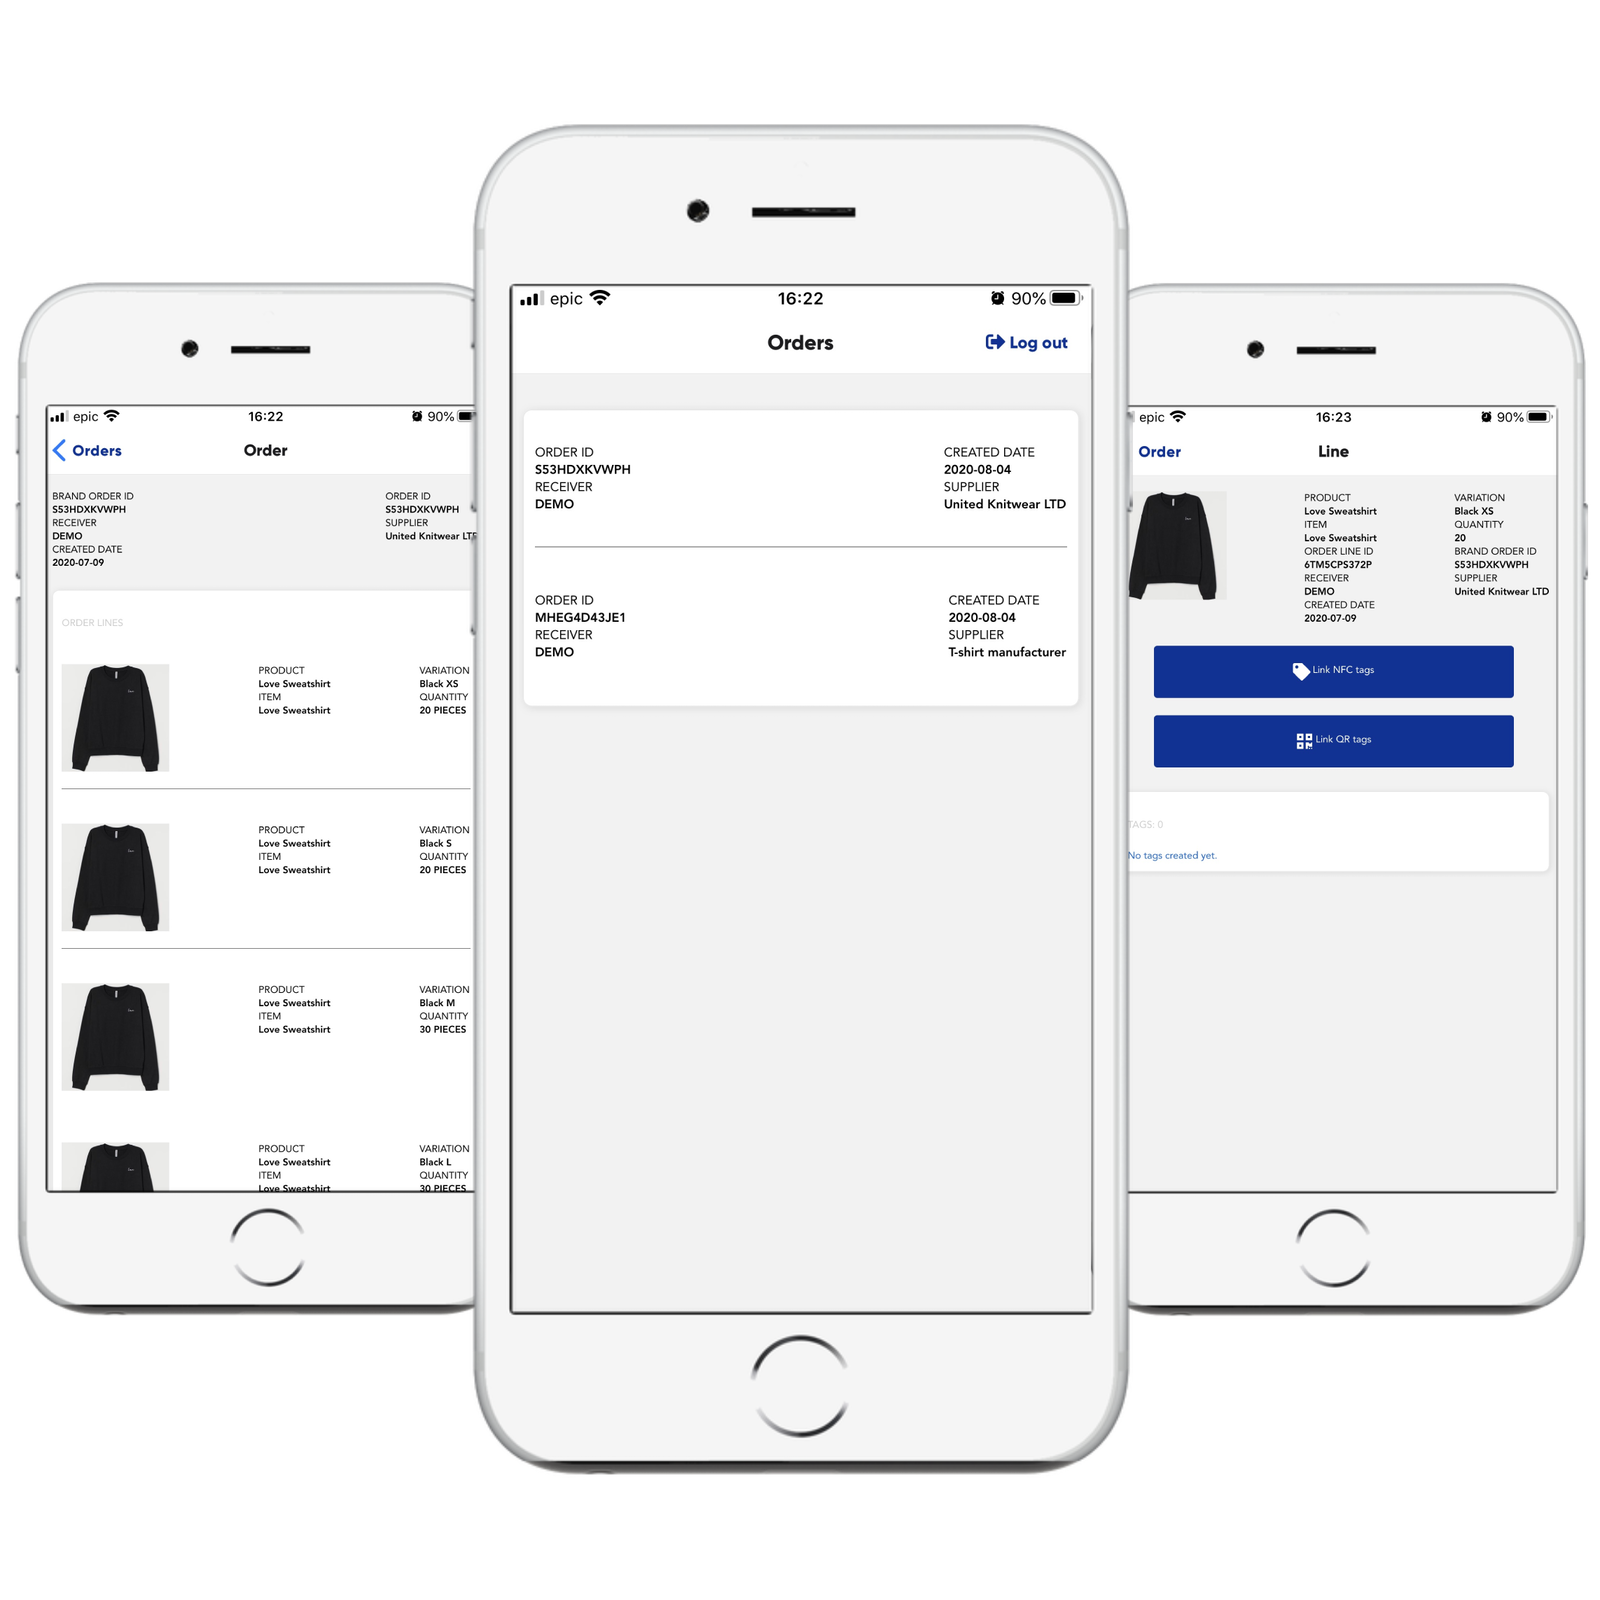 retraced business app three views in iPhones with orders, order lines and tagging view